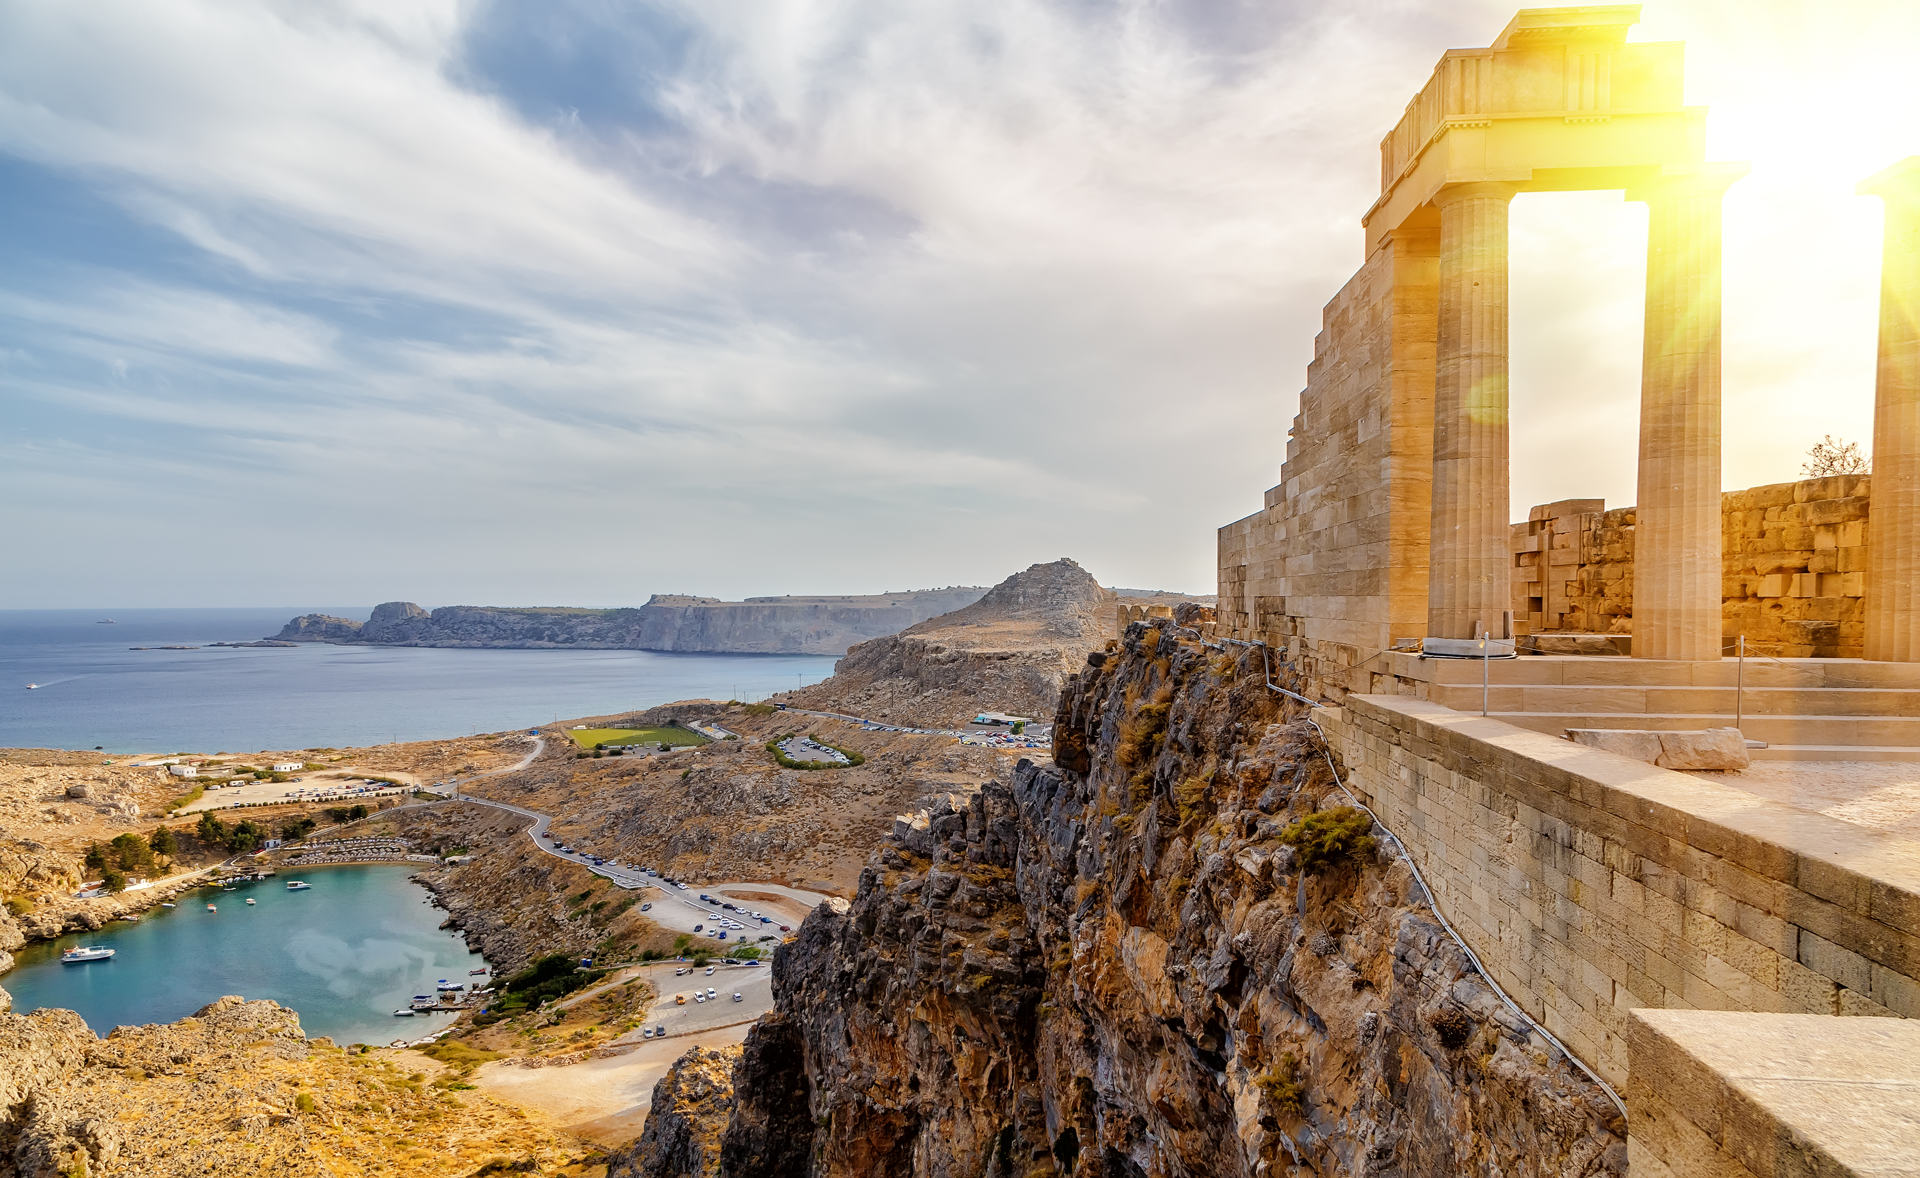 Acropolis of Lindos. Doric columns of the ancient Temple of Athena Lindia setting sun above the columns T